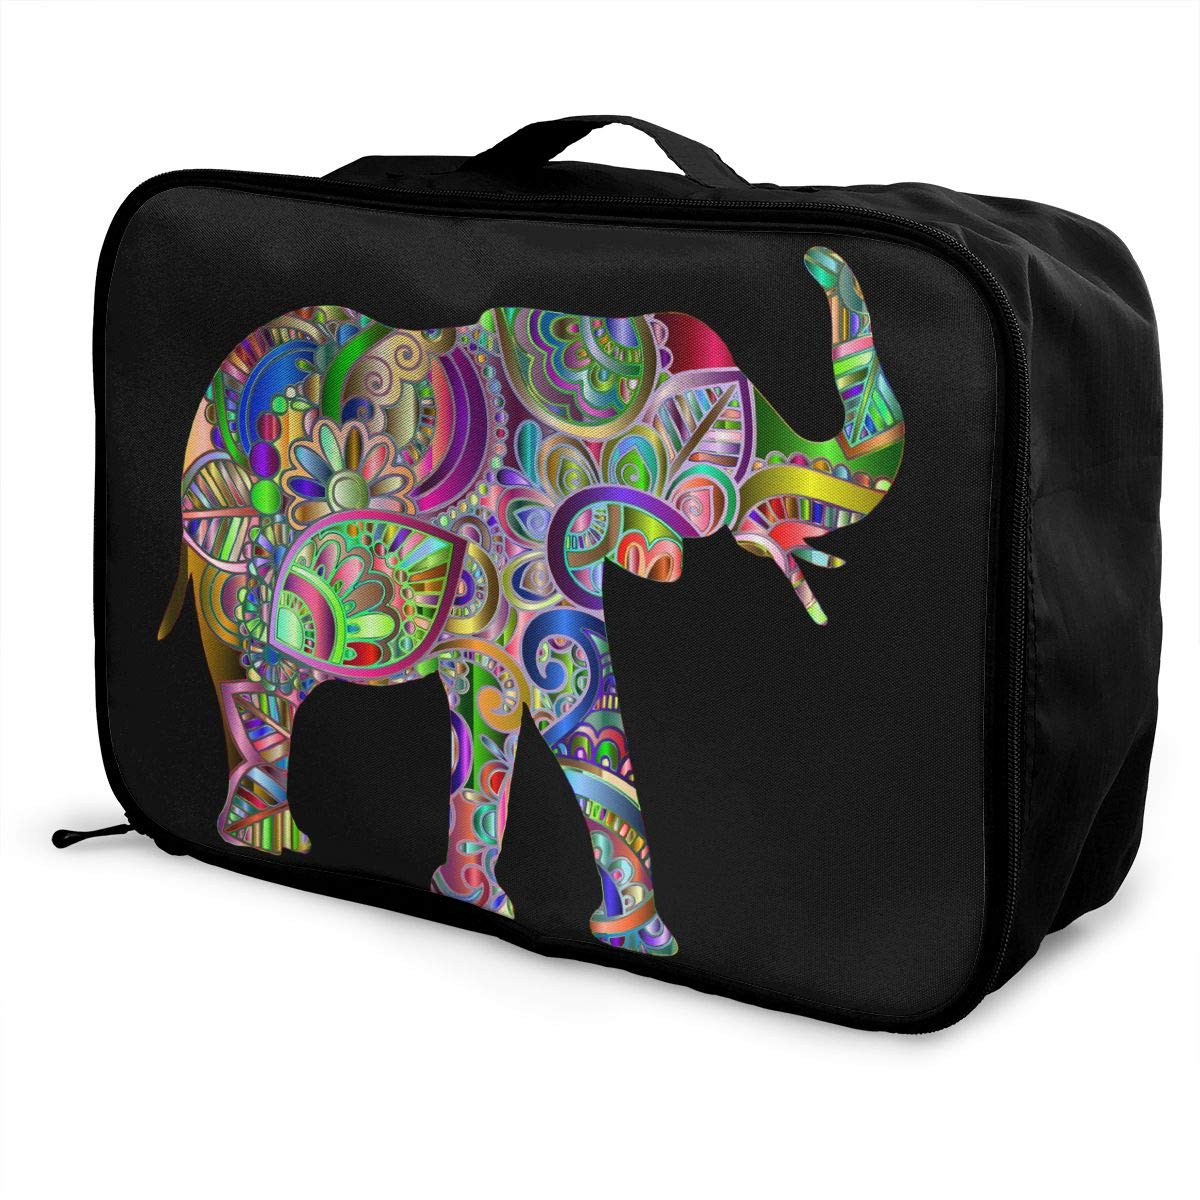 Elephant Animal Abstract Art Colourful Leaf Shape Travel Lightweight Waterproof Foldable Storage Carry Luggage Large Capacity Portable Luggage Bag Duffel Bag